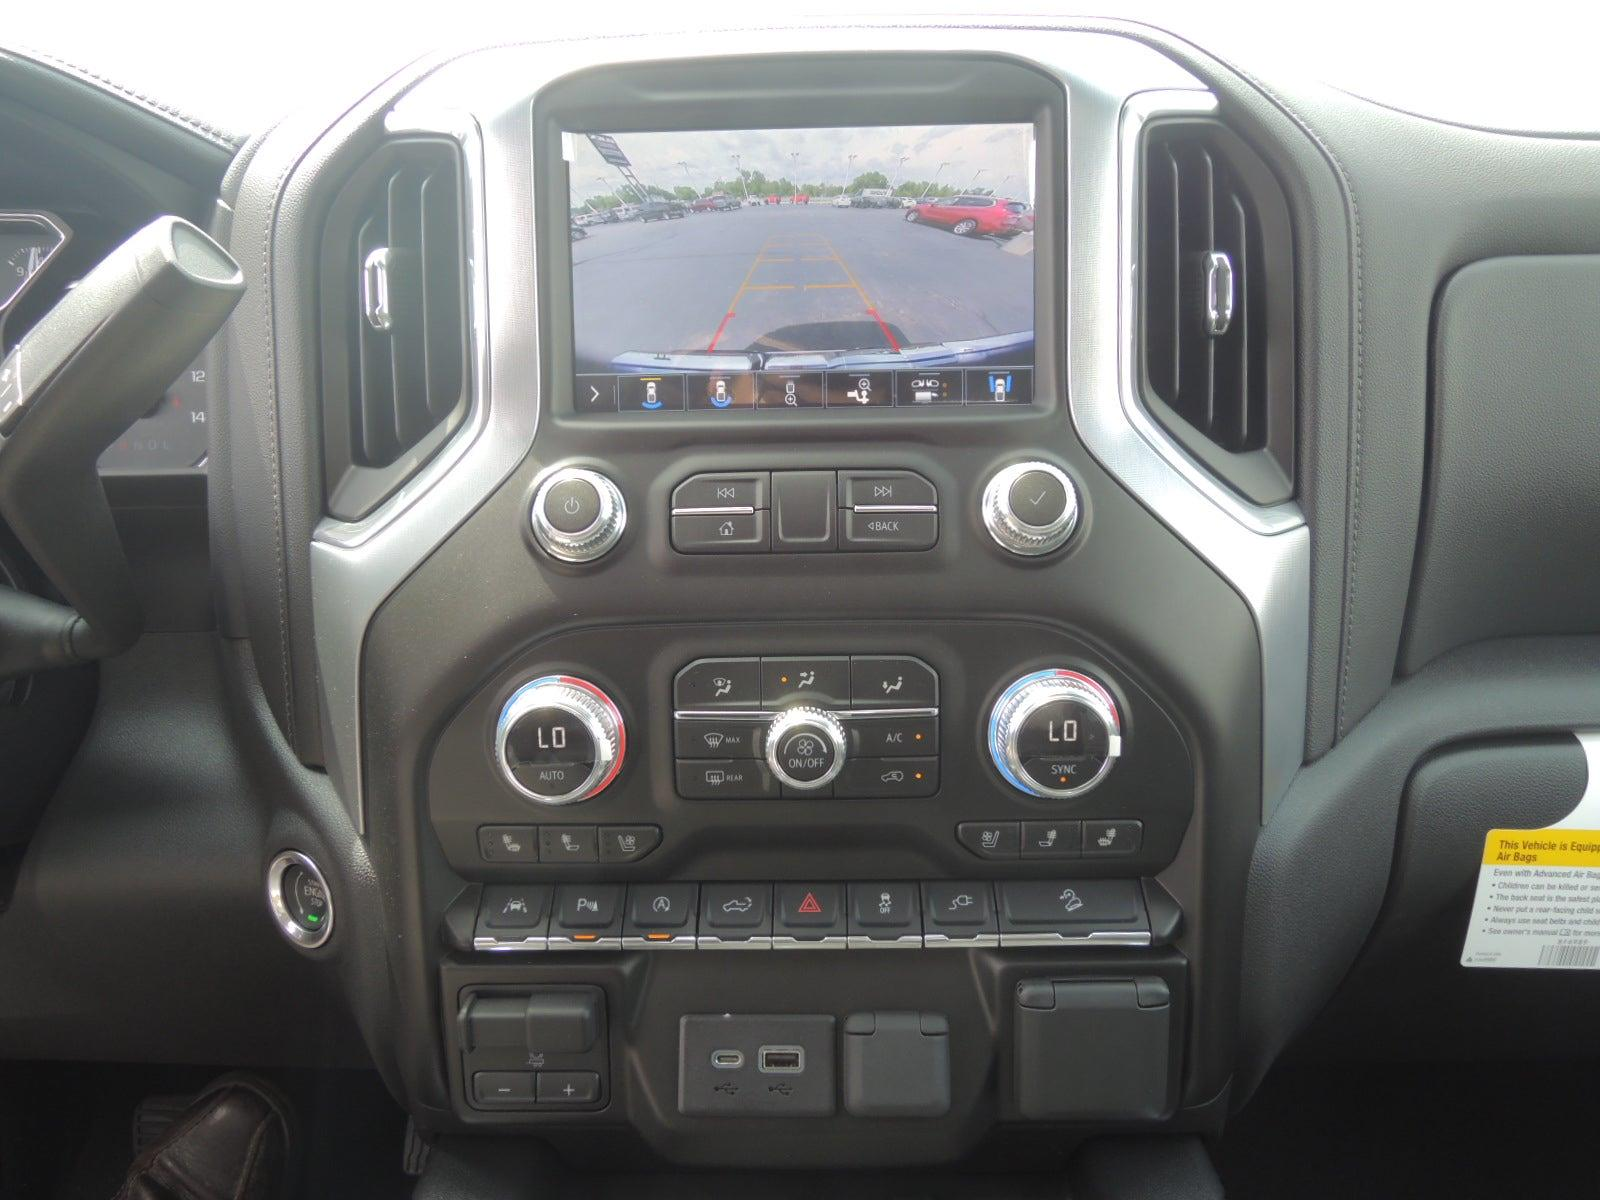 2021 GMC Sierra 1500 Crew Cab 4x4, Pickup #MT282 - photo 23